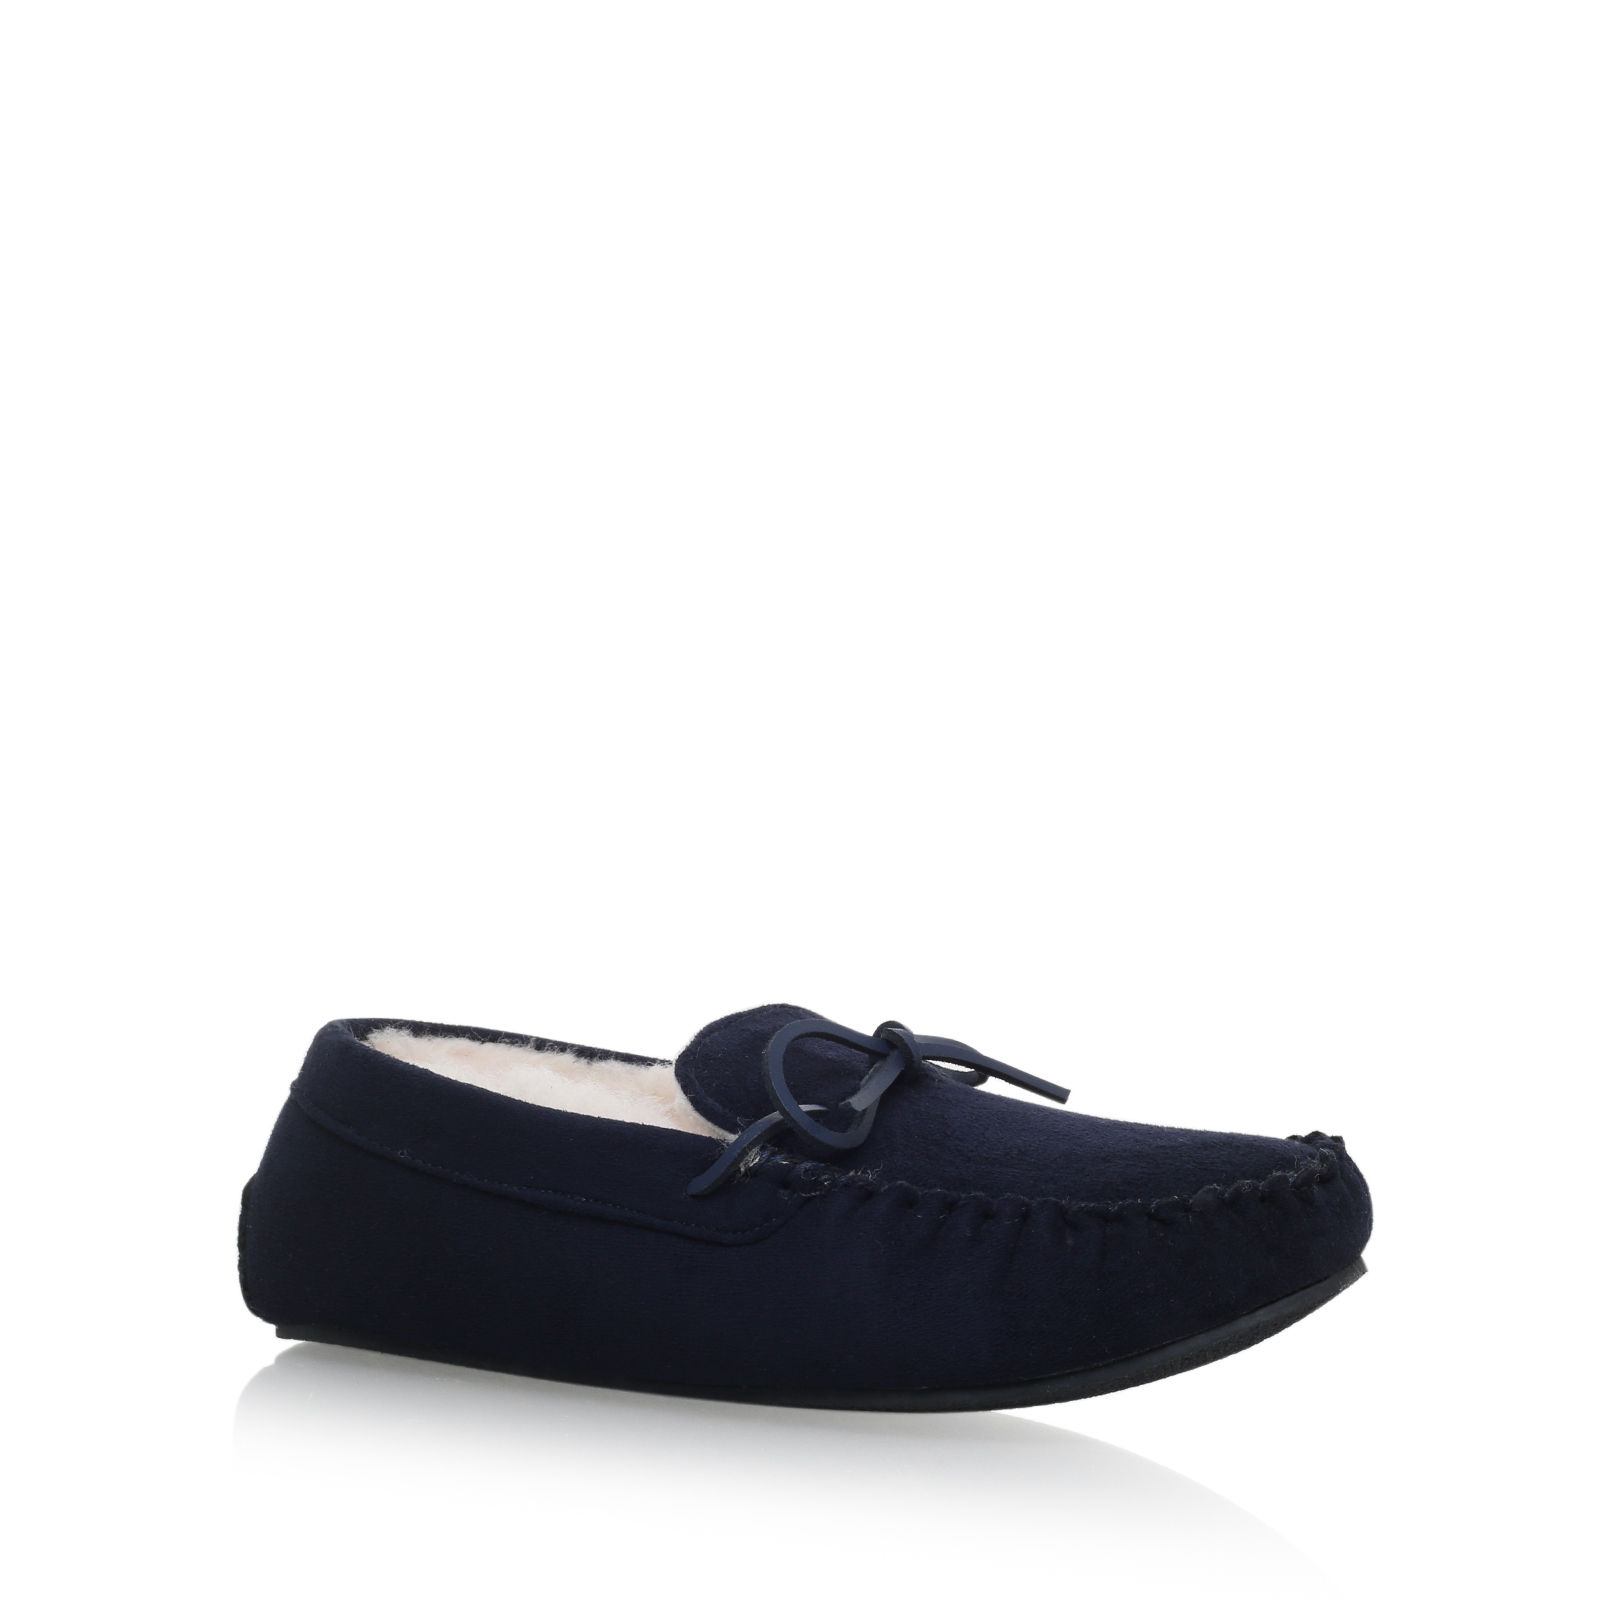 MOCCASIN BOX SLIPPERS